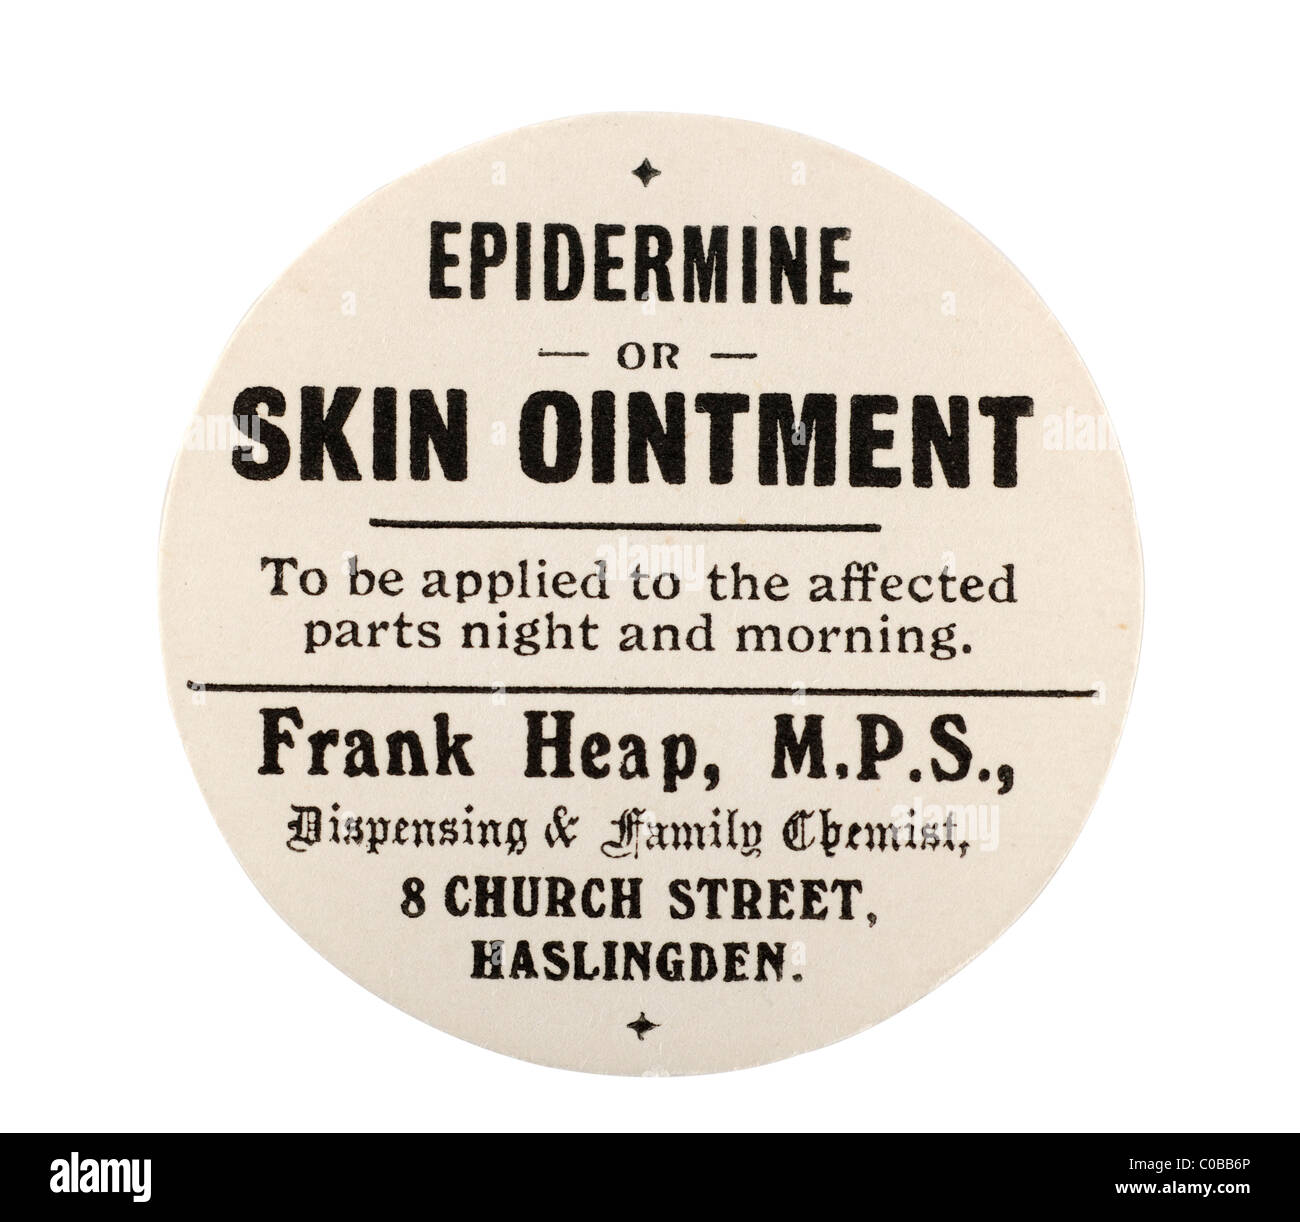 Old vintage chemist label for epidermine skin ointment from Frank Heap M P S in Haslingden. EDITORIAL ONLY - Stock Image